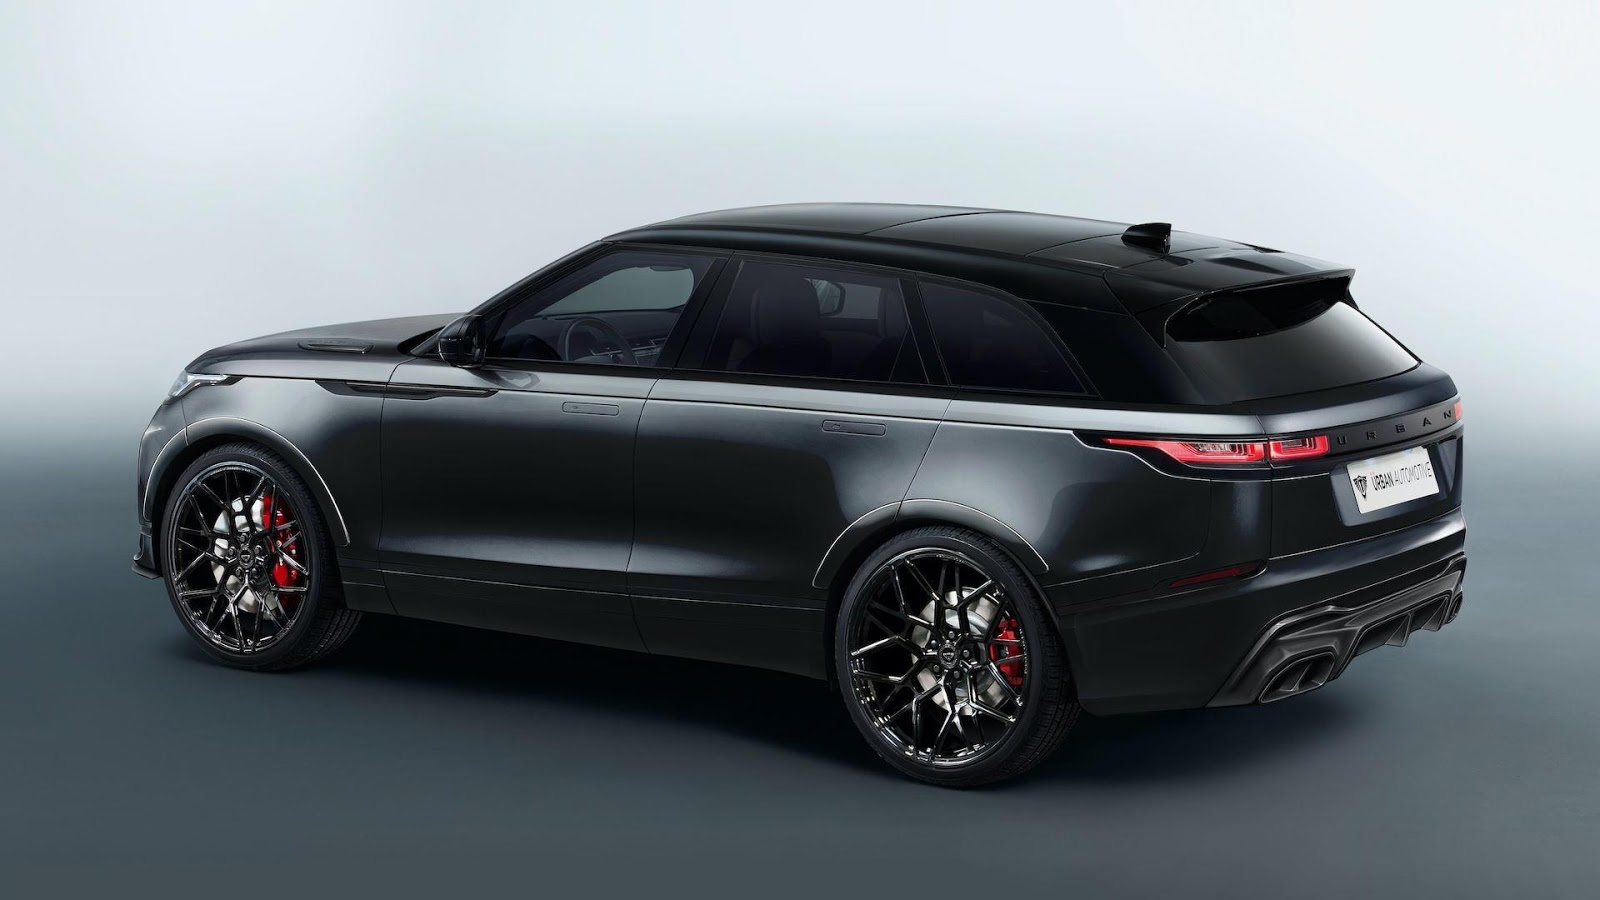 2017 Tesla Price Range >> Urban Automotive's Range Rover Velar Is Almost An SVR - carscoops.com